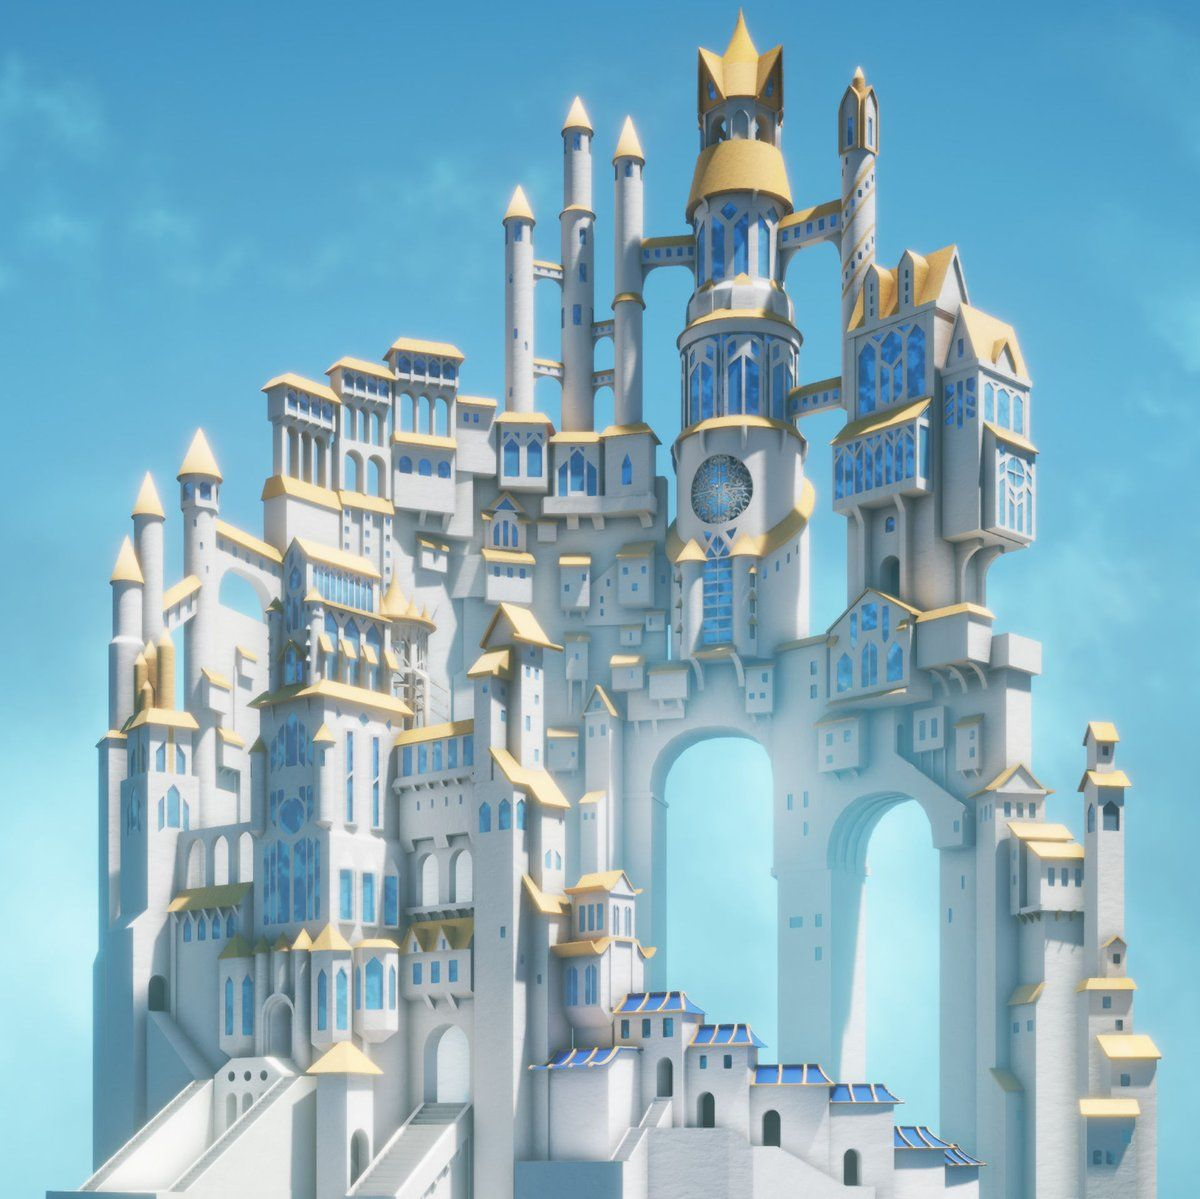 Unreal Engine on Fantasy castle, Castle, Fantasy landscape